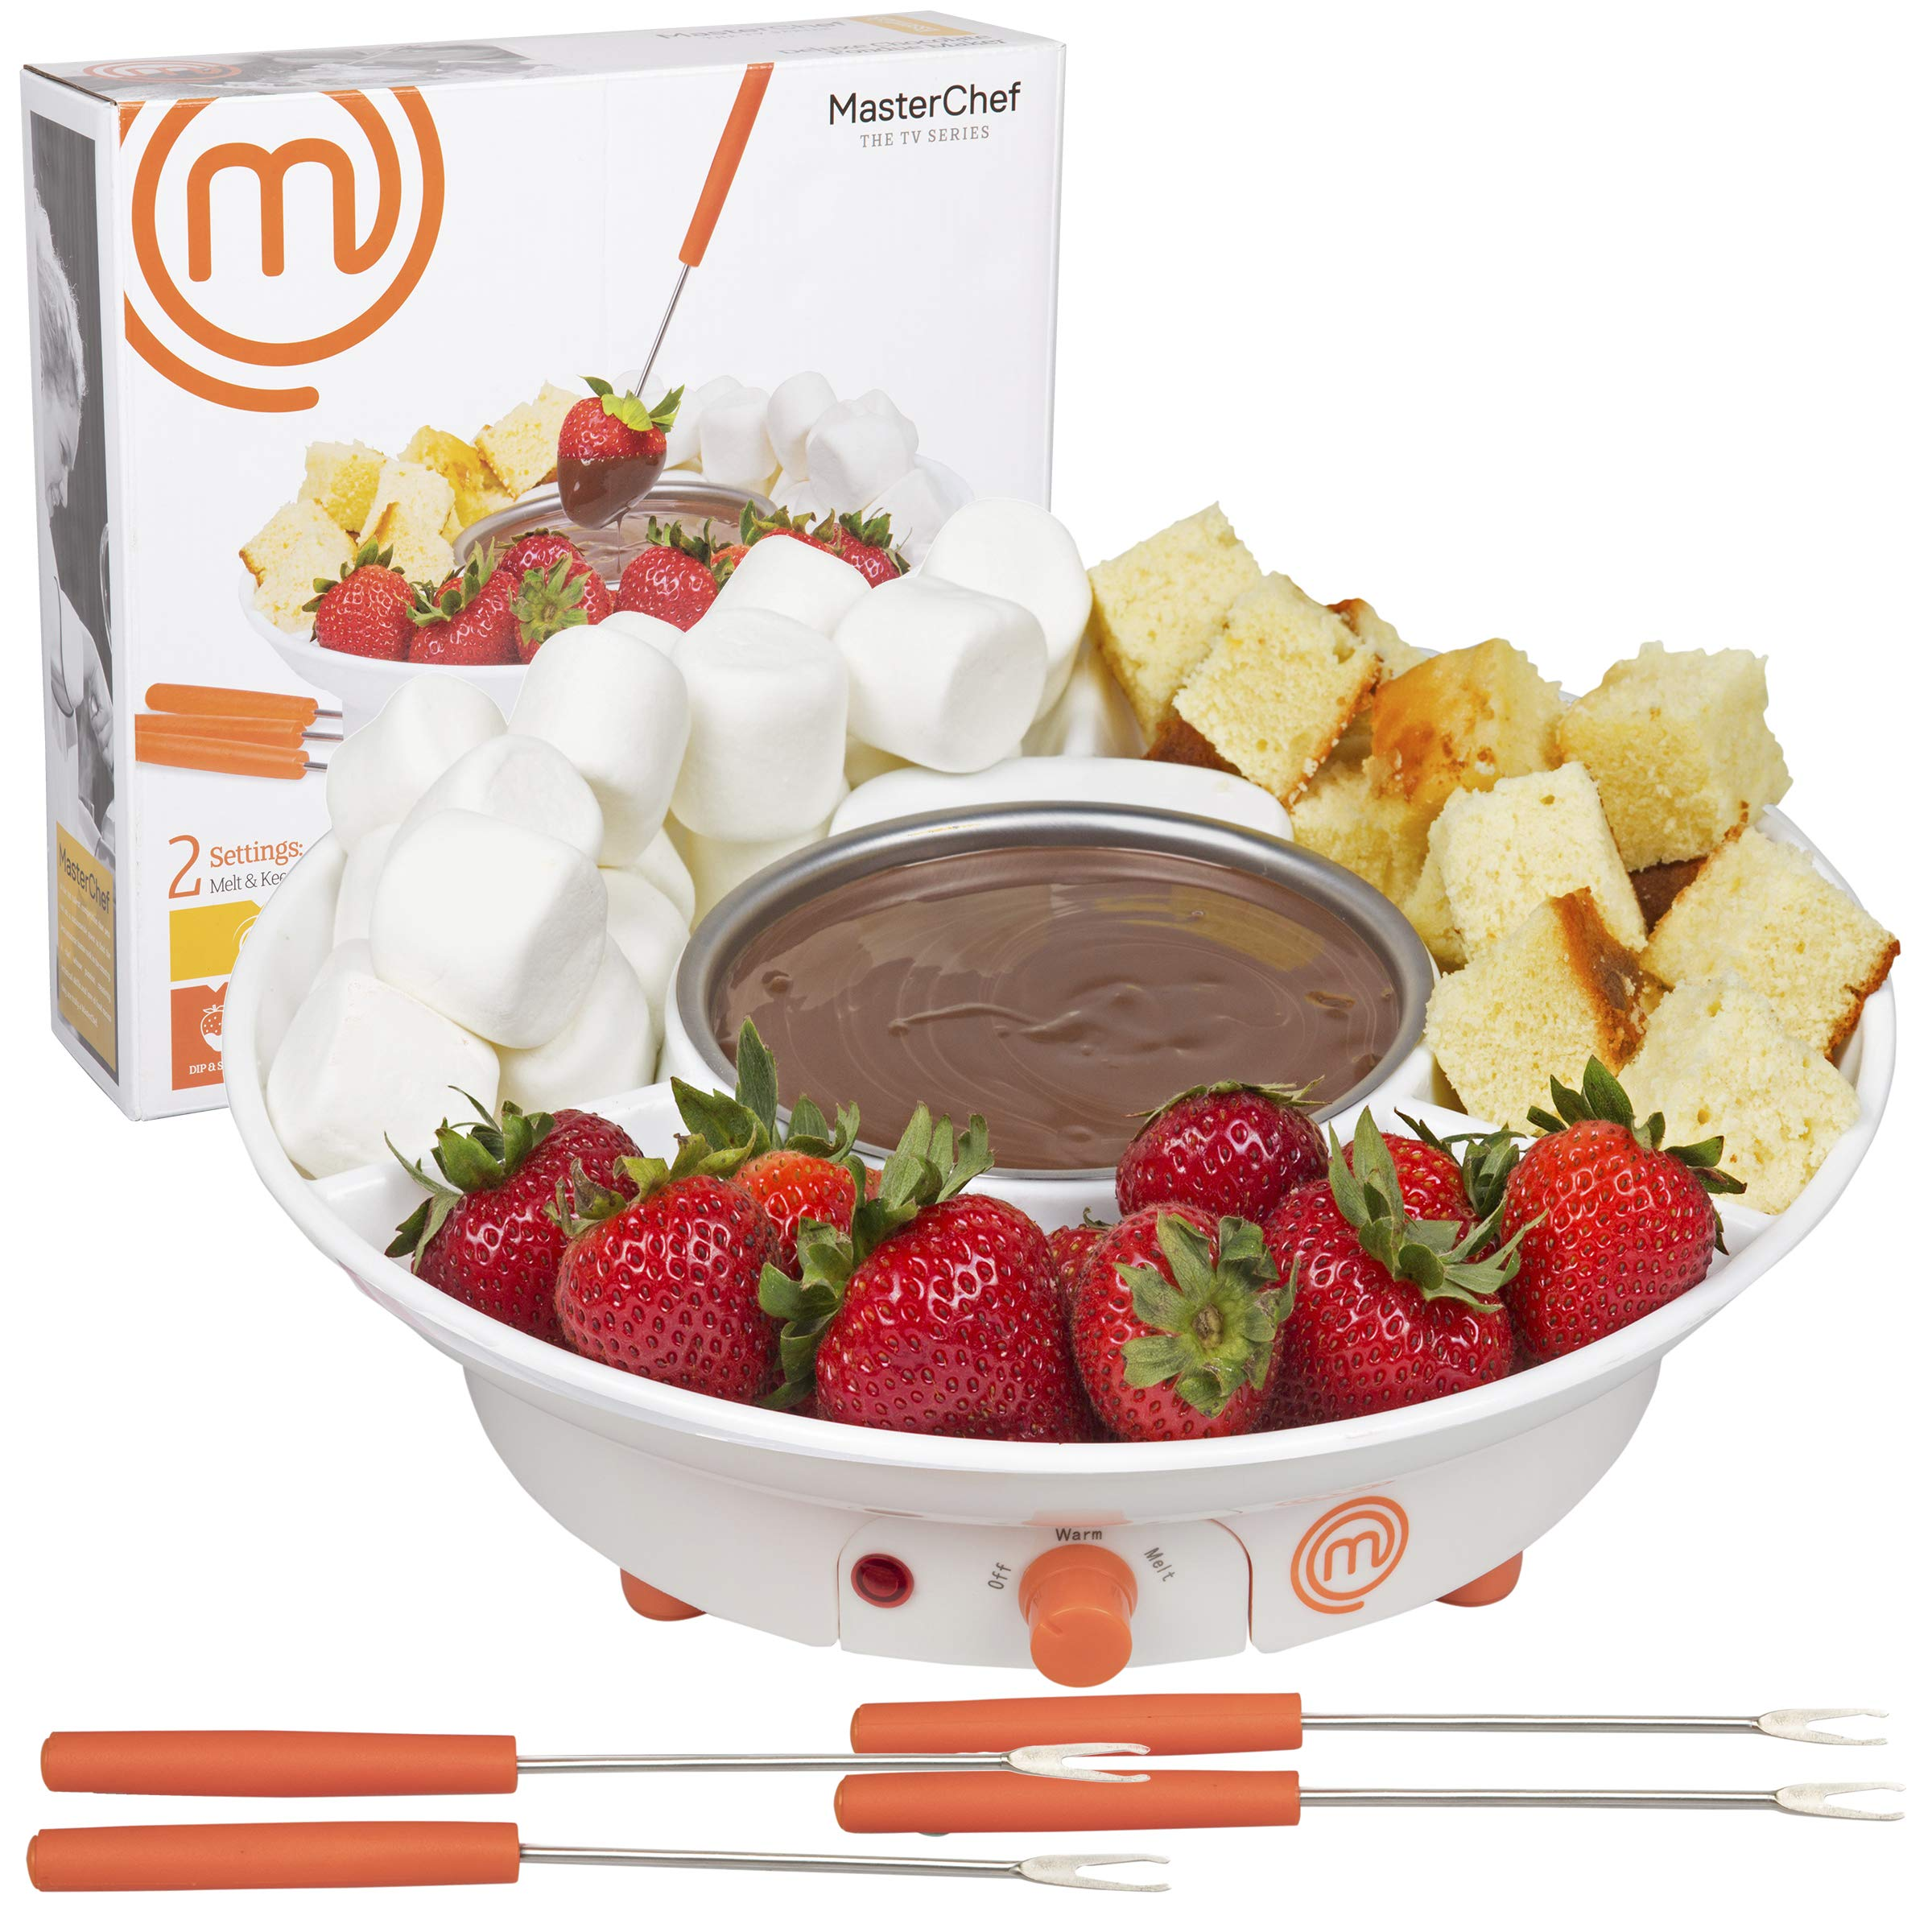 MasterChef Chocolate Fondue Maker- Deluxe Electric Dessert Fountain Fondue Pot Set with 4 Forks and Party Serving Tray (1) by MasterChef